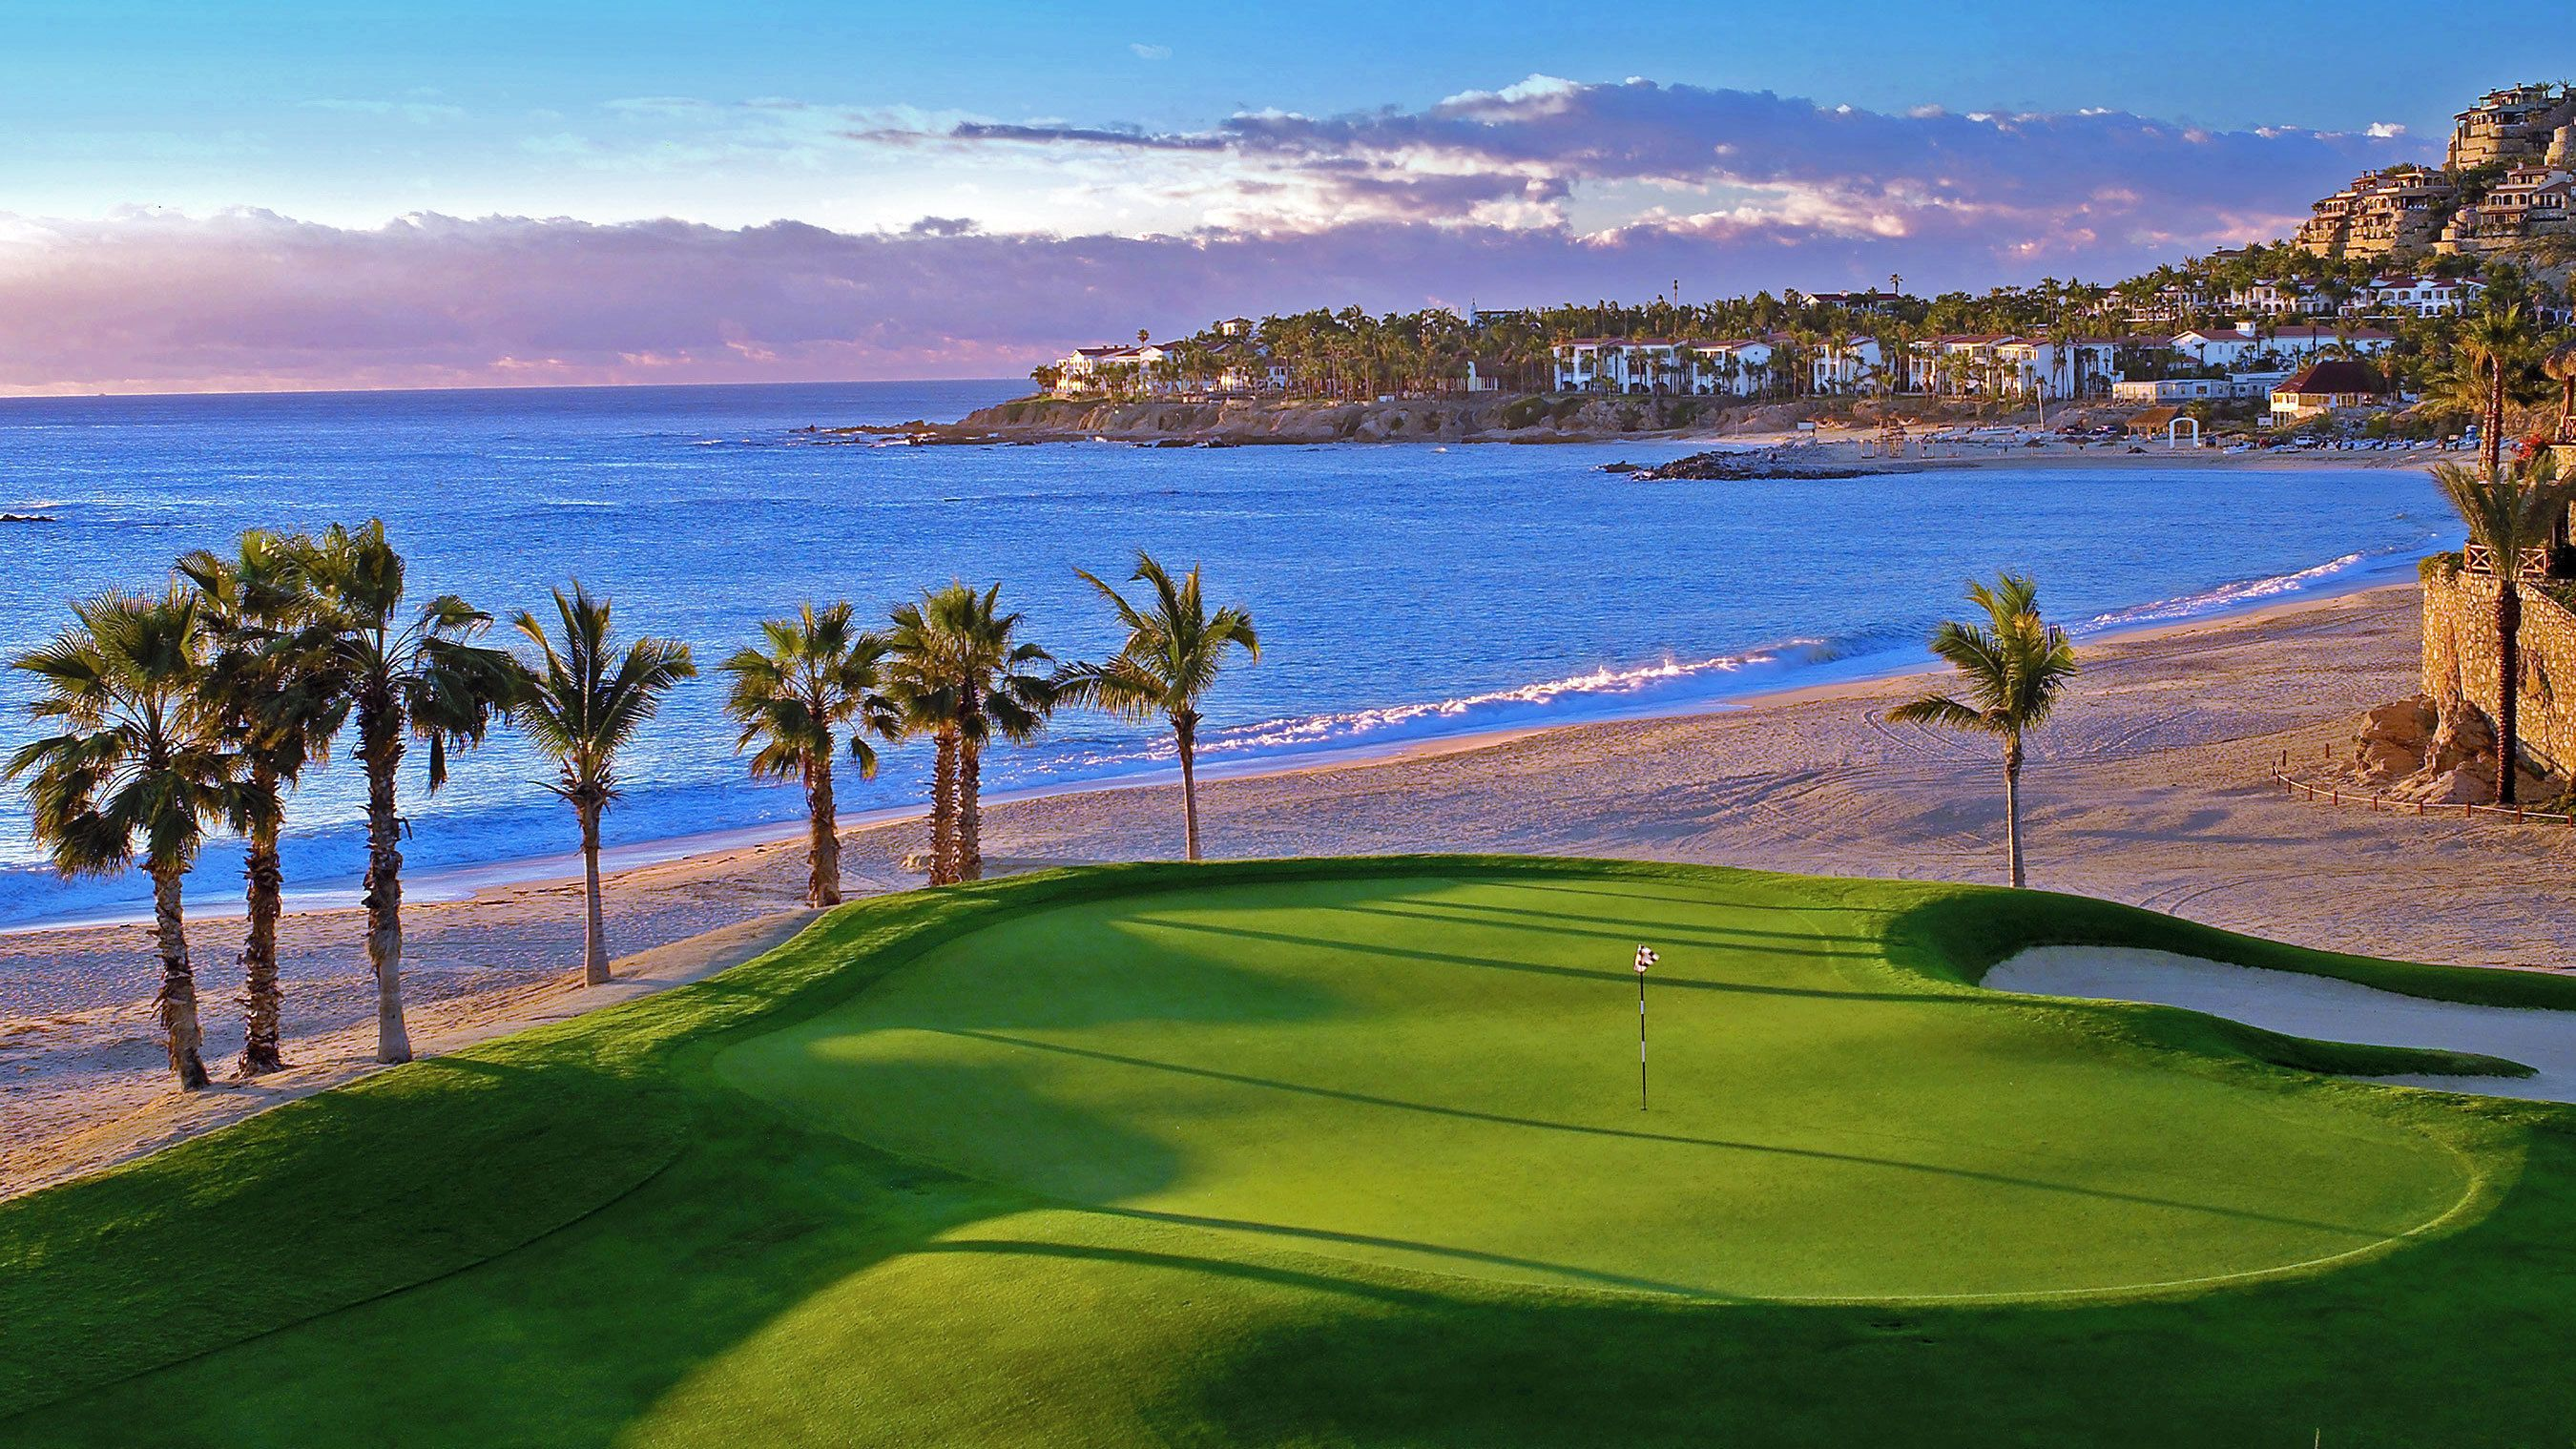 Golf course on the coast of Mexico